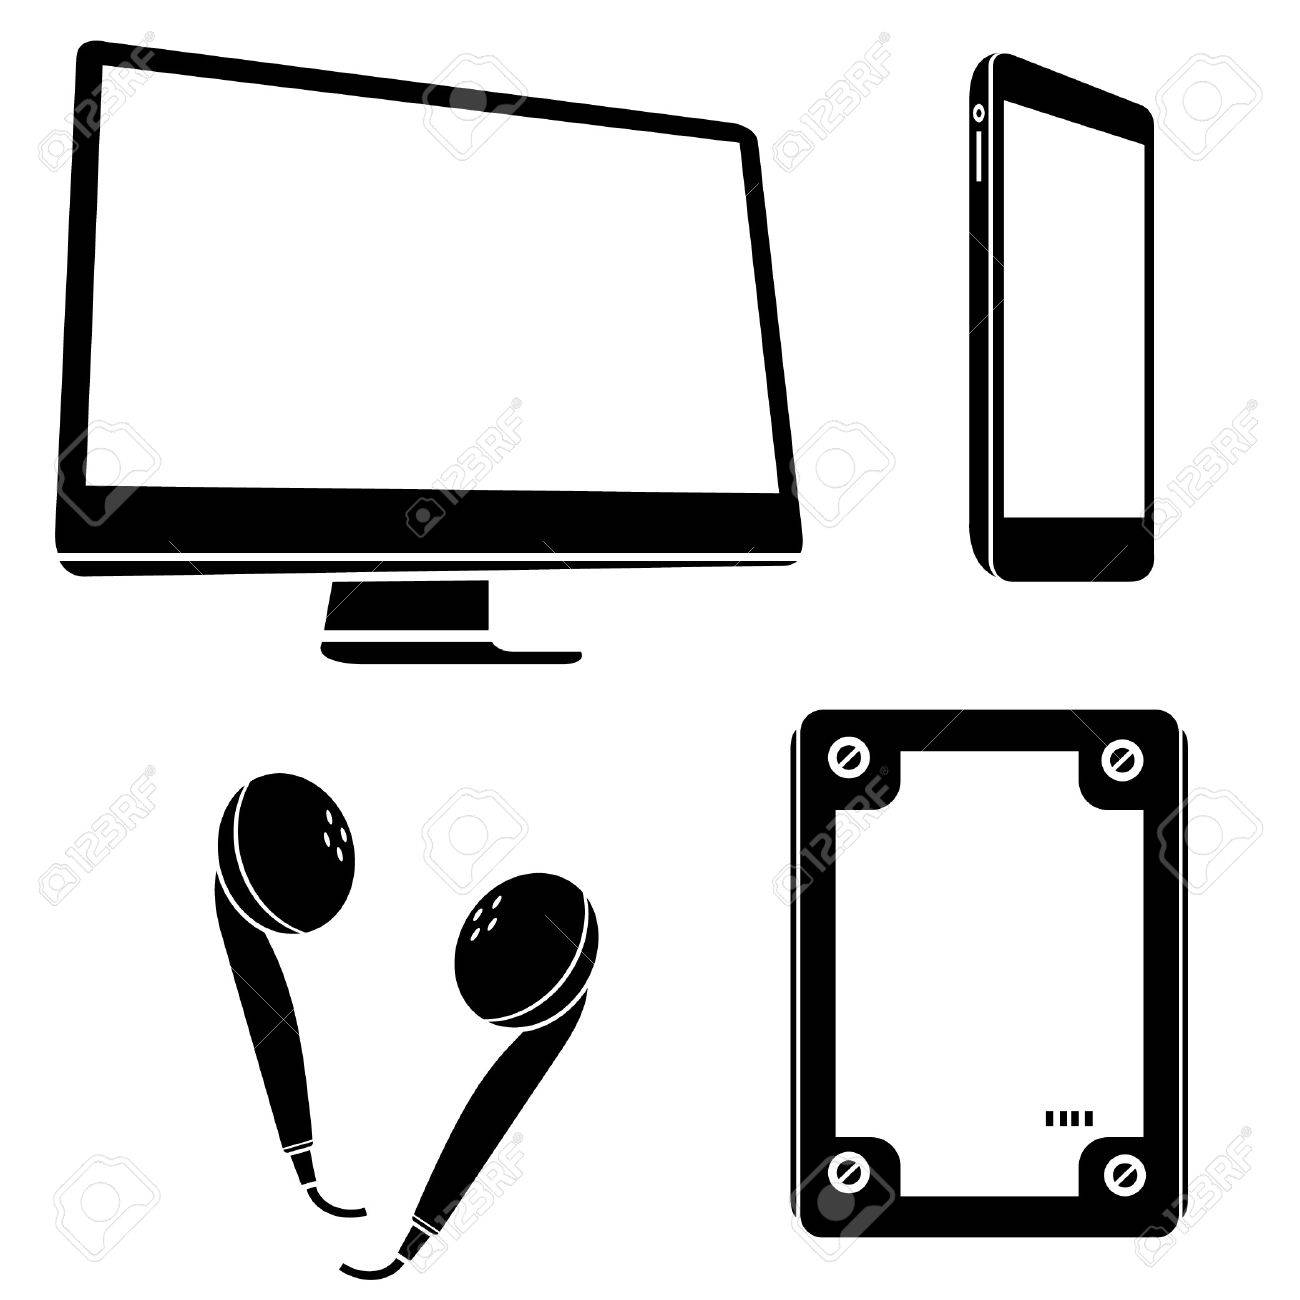 computer, smart phone, icons Stock Vector - 20959663